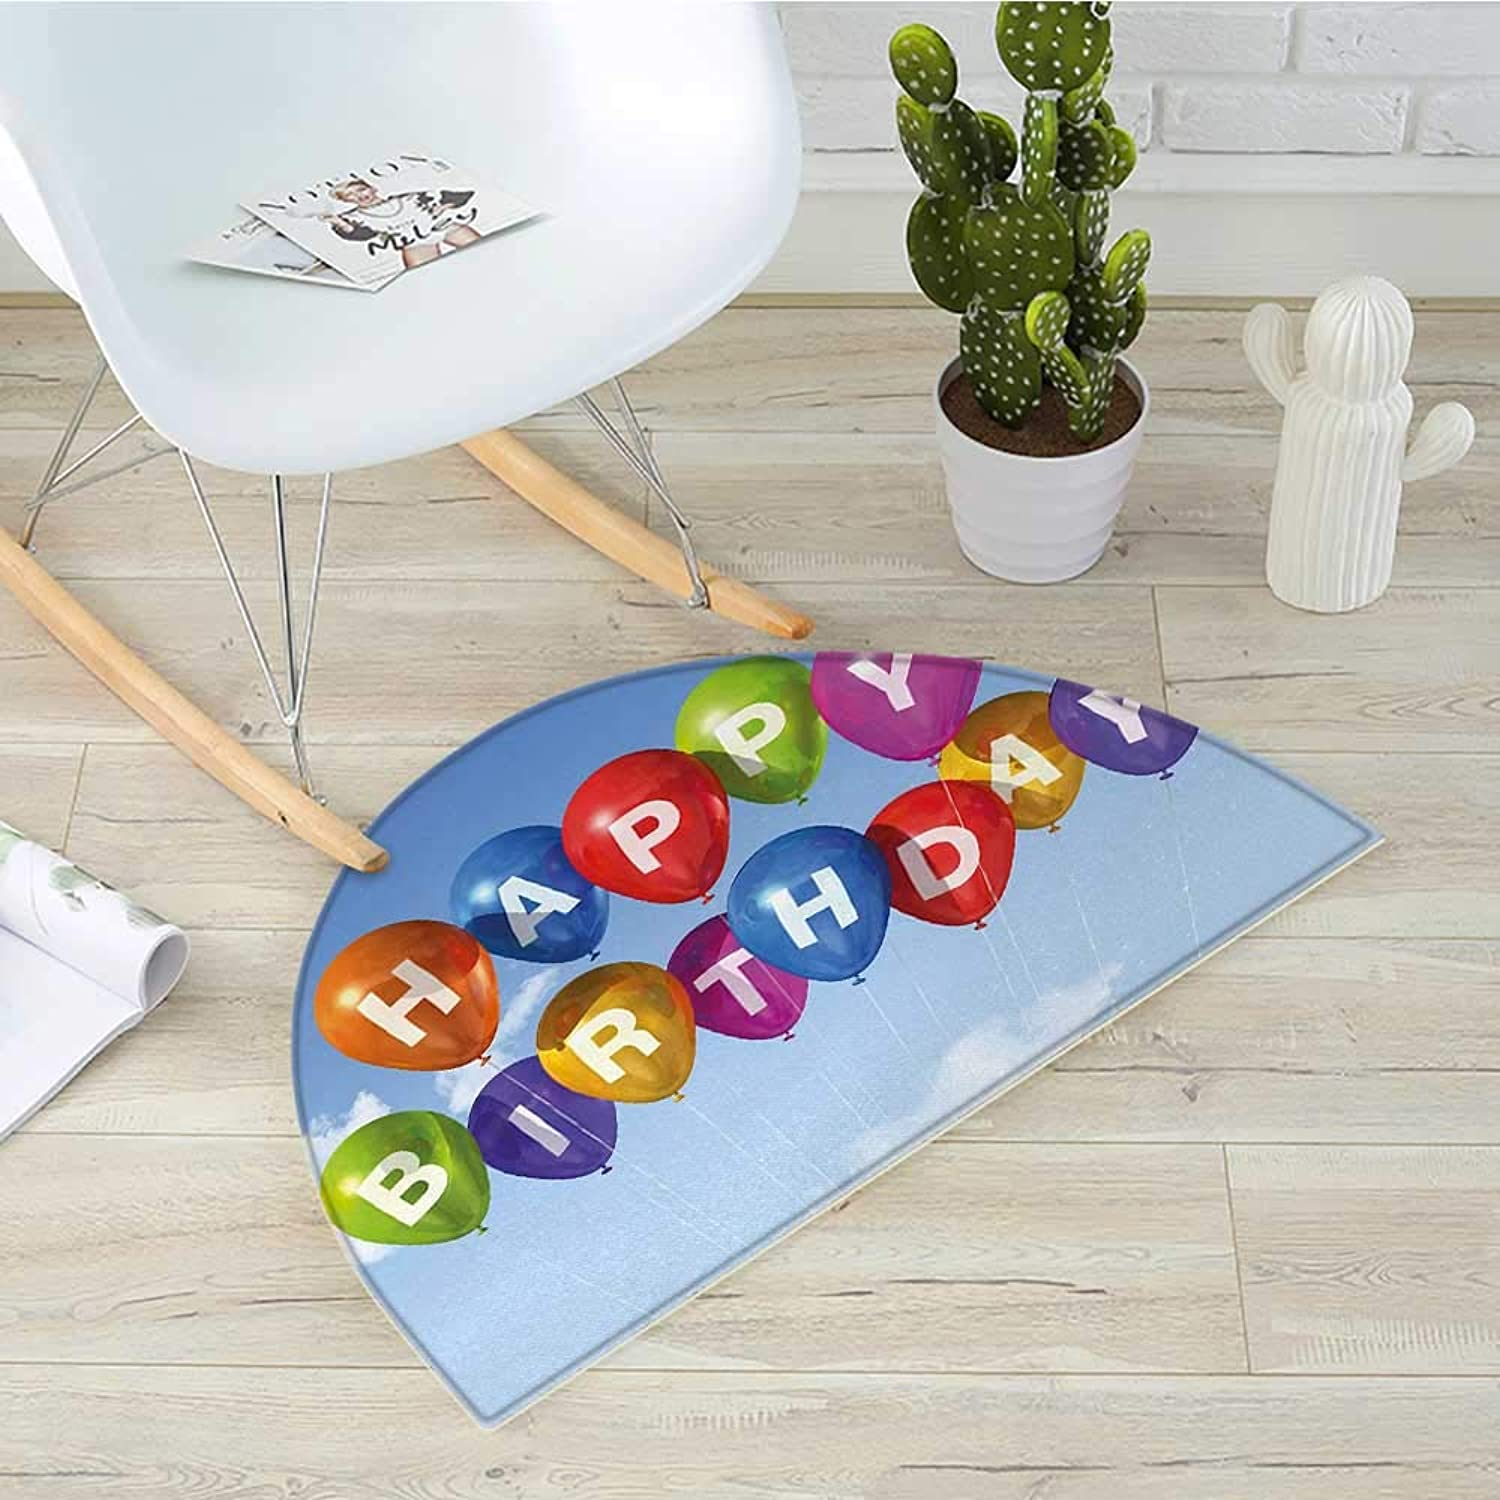 Birthday Semicircular Cushioncolord Celebration Balloons with Letters in The Clear Sky White Clouds Happiness Entry Door Mat H 39.3  xD 59  Multicolor